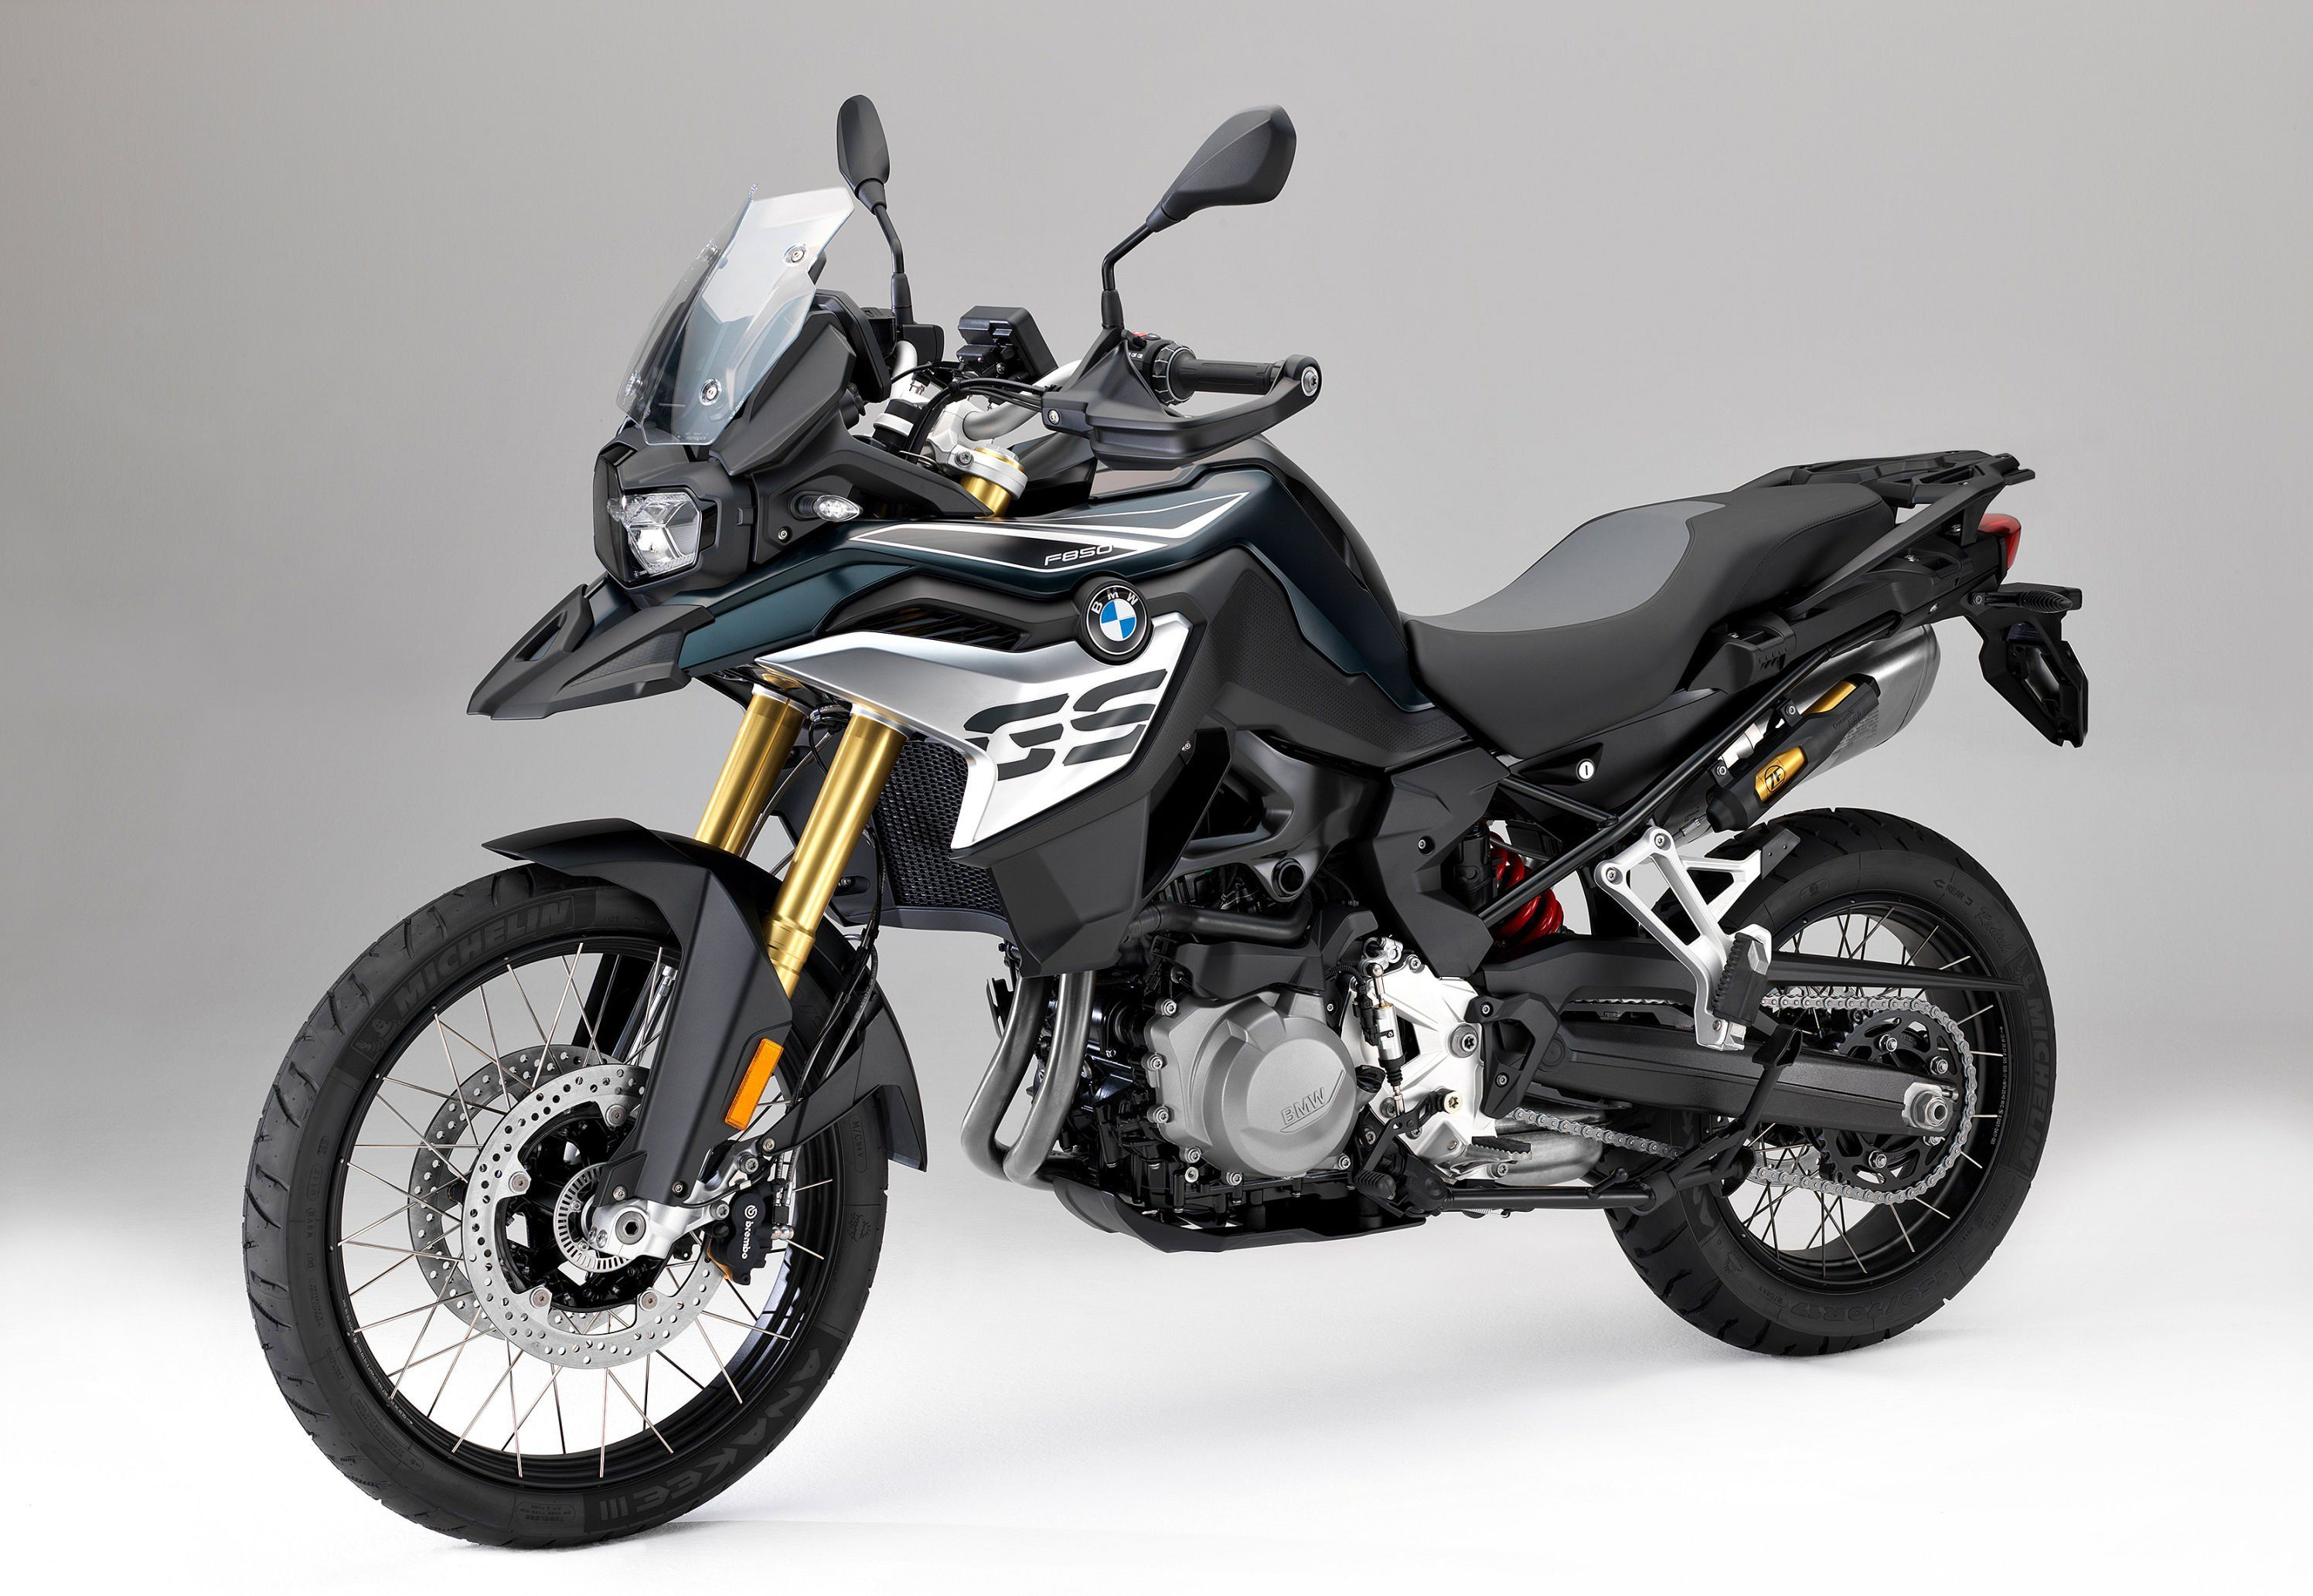 Bmw 750 Moto 2018 Release Date From 2018 Bmw F 750 Gs F 850 Gs